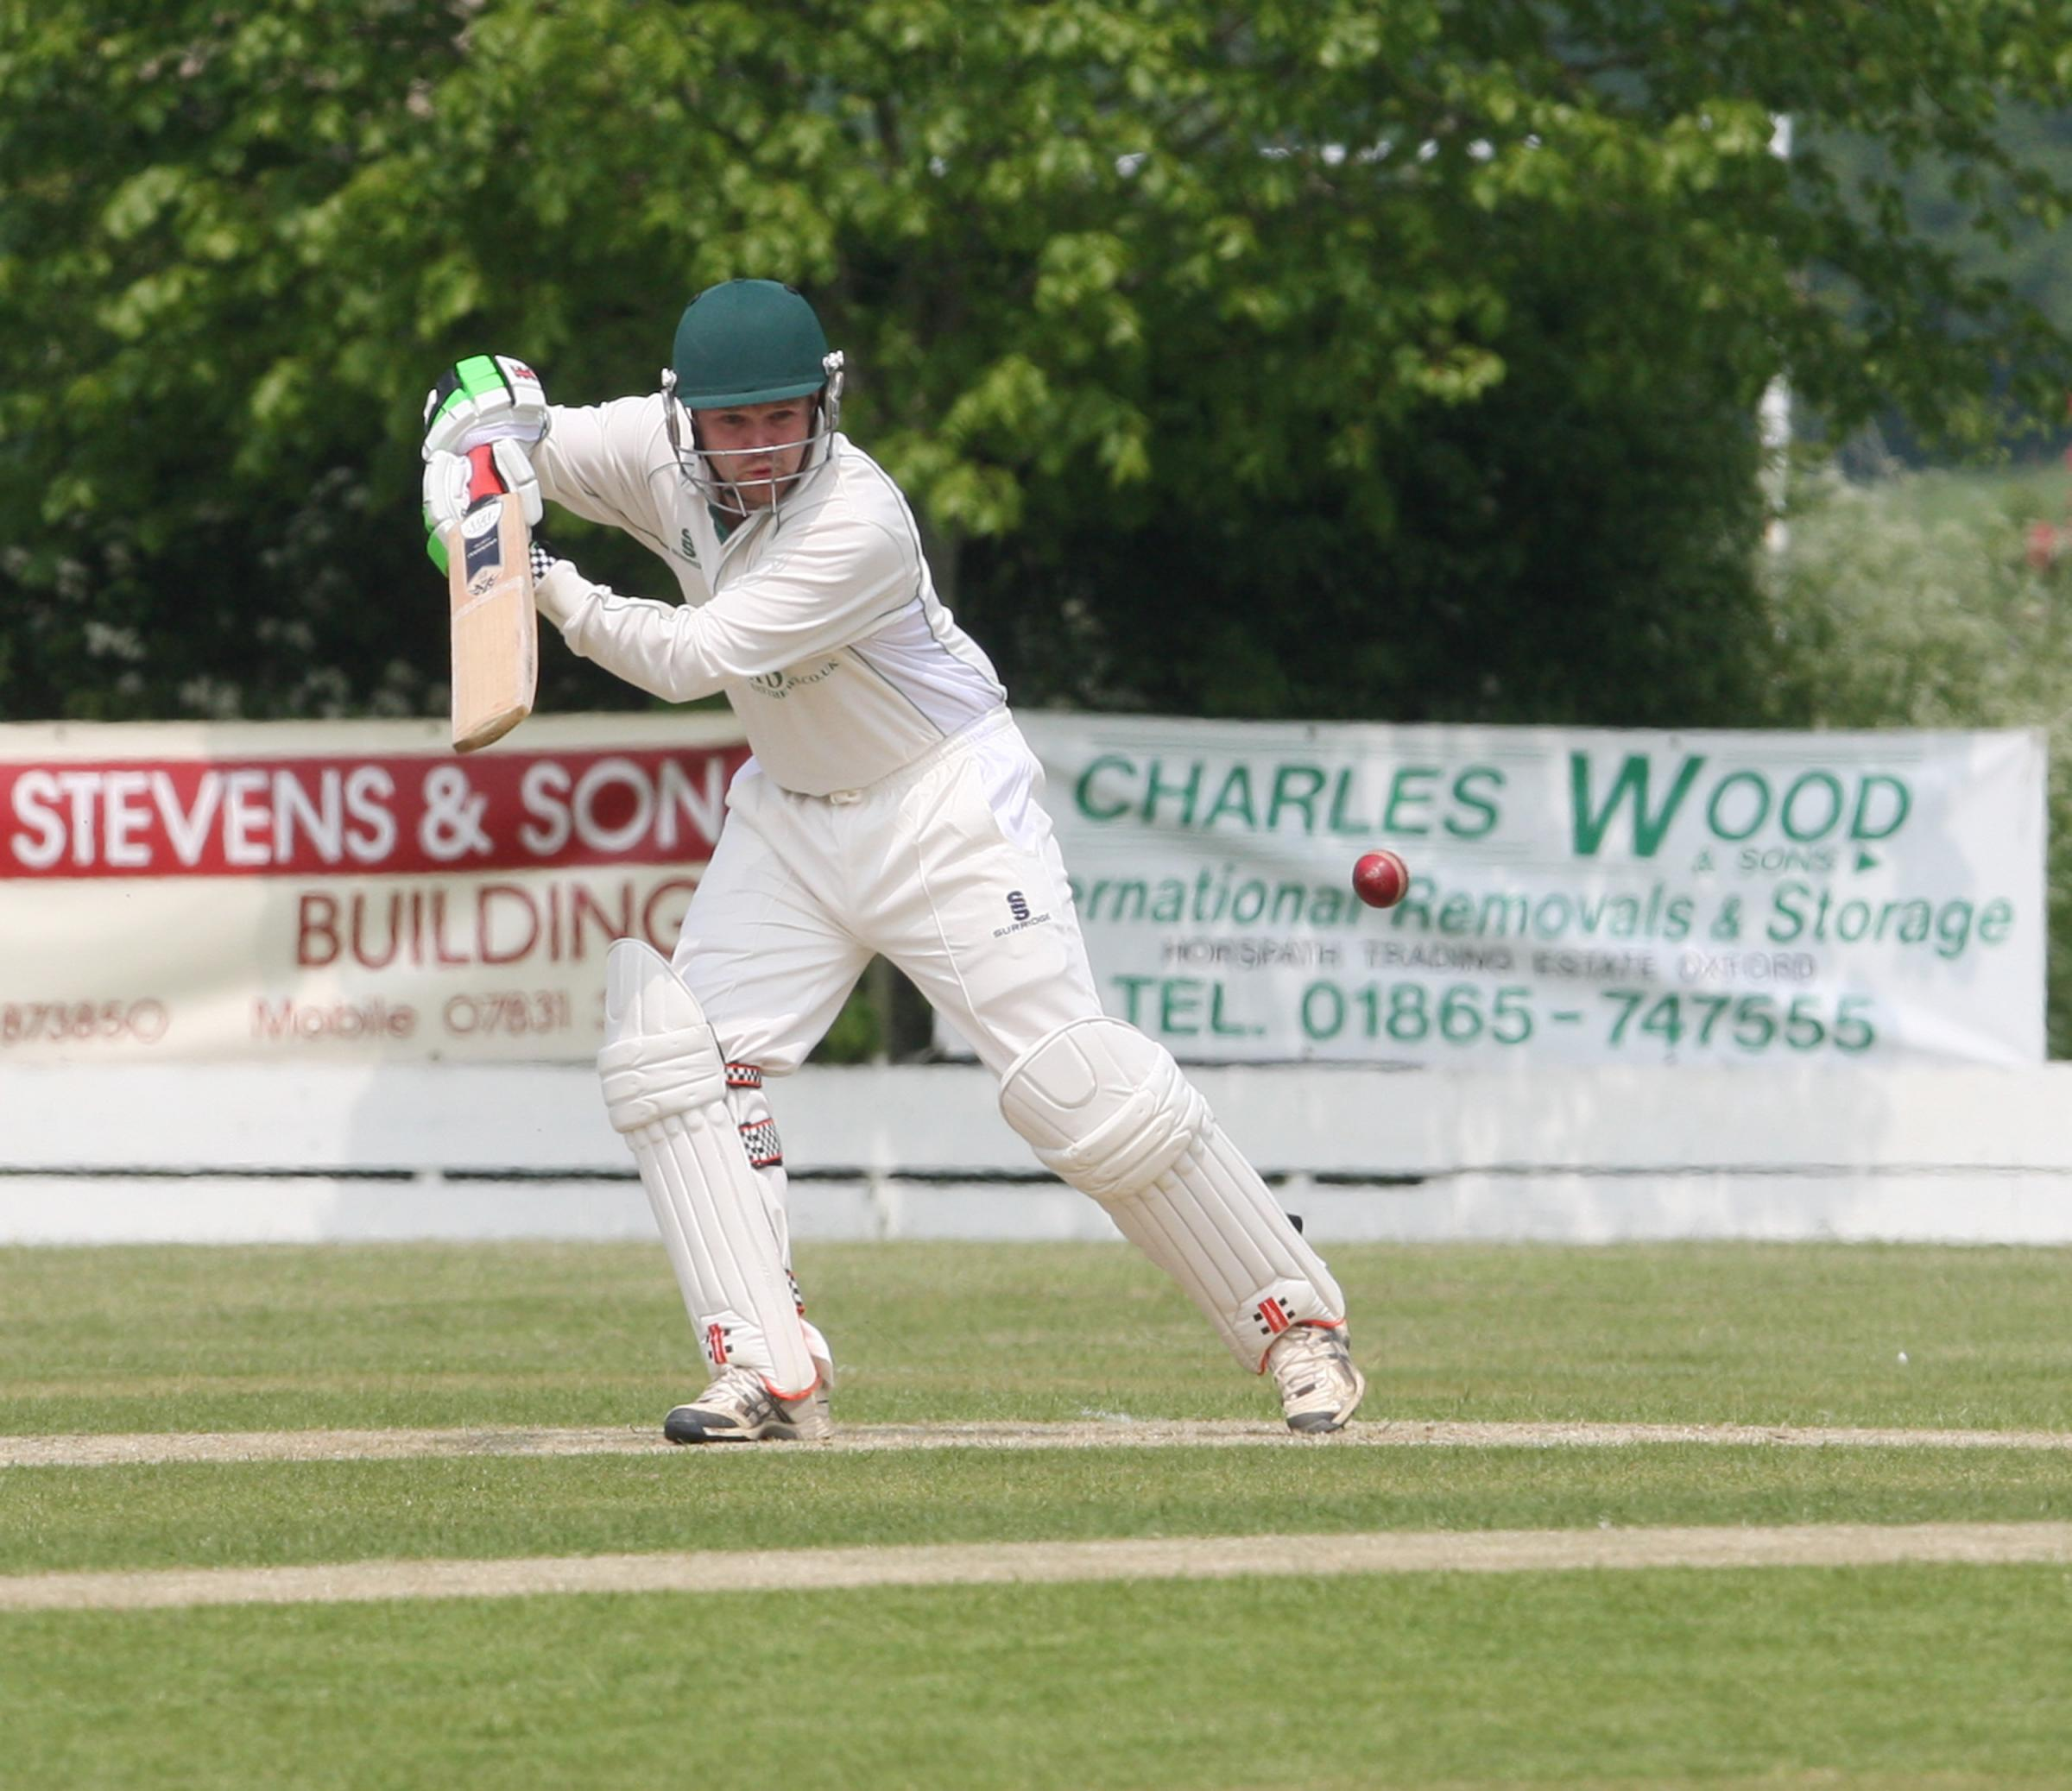 Craig Wood scored 22 and took three wickets for Shipton